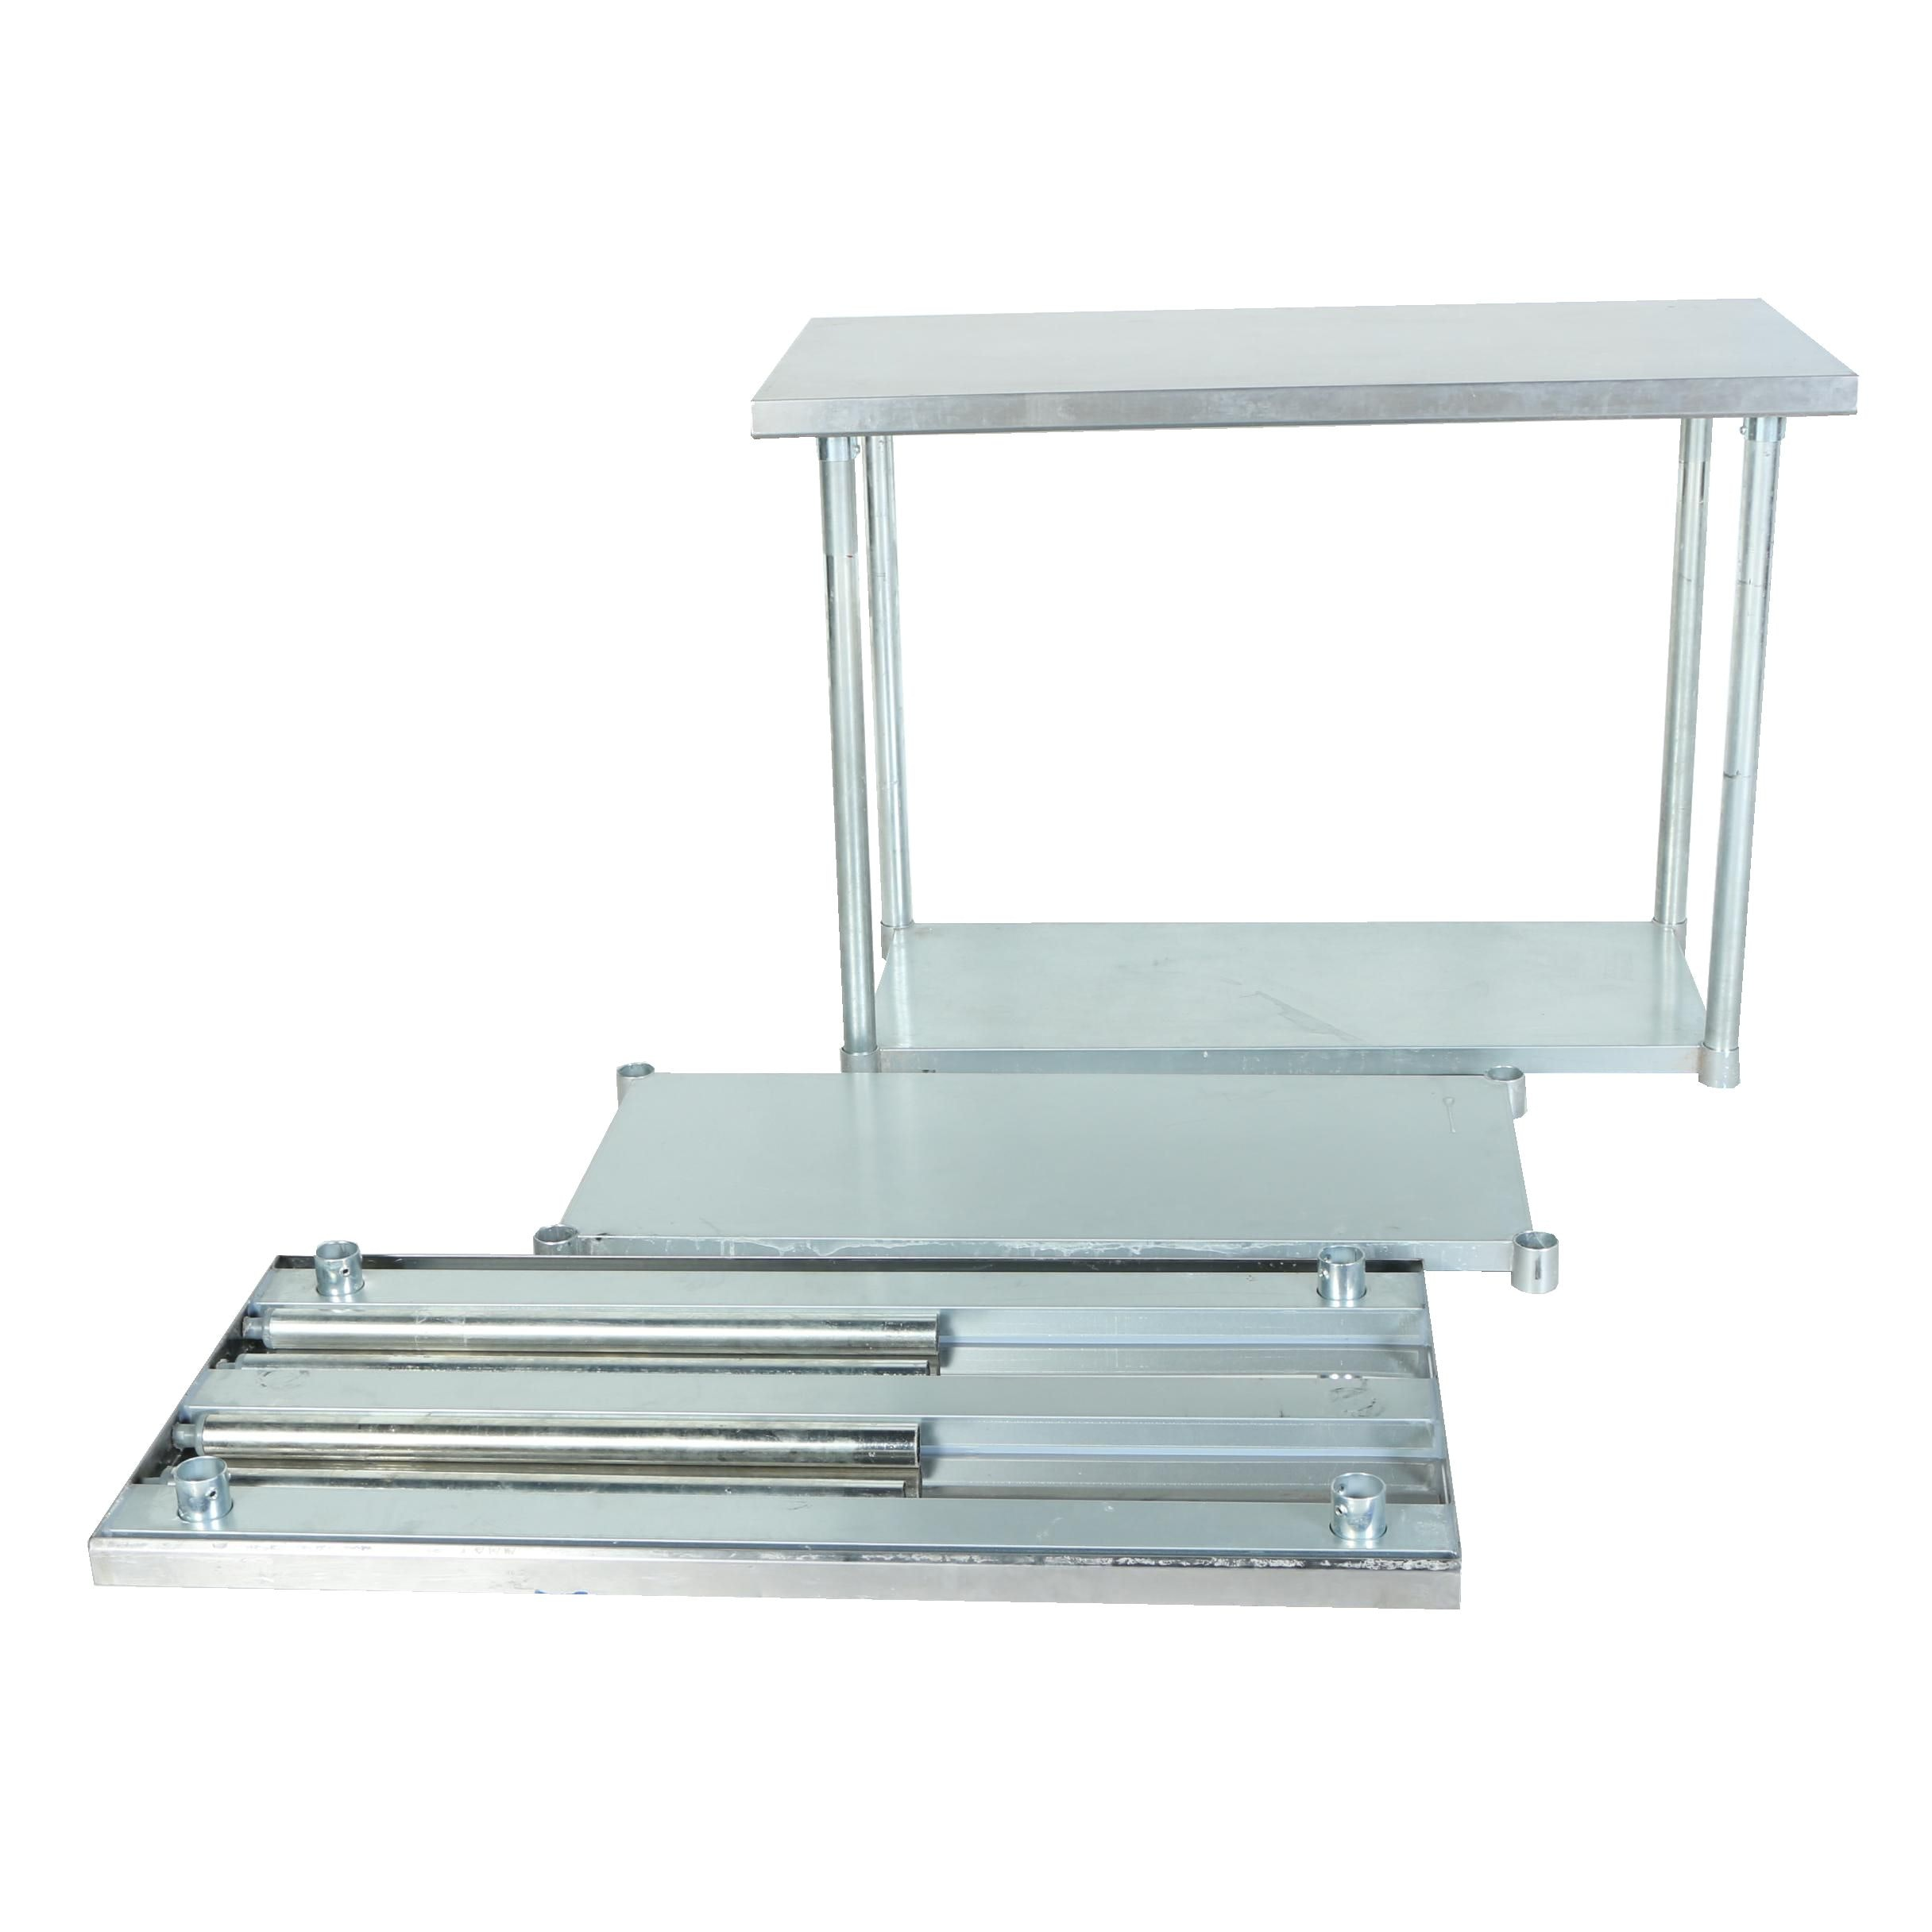 GSW Stainless Steel Work Tables